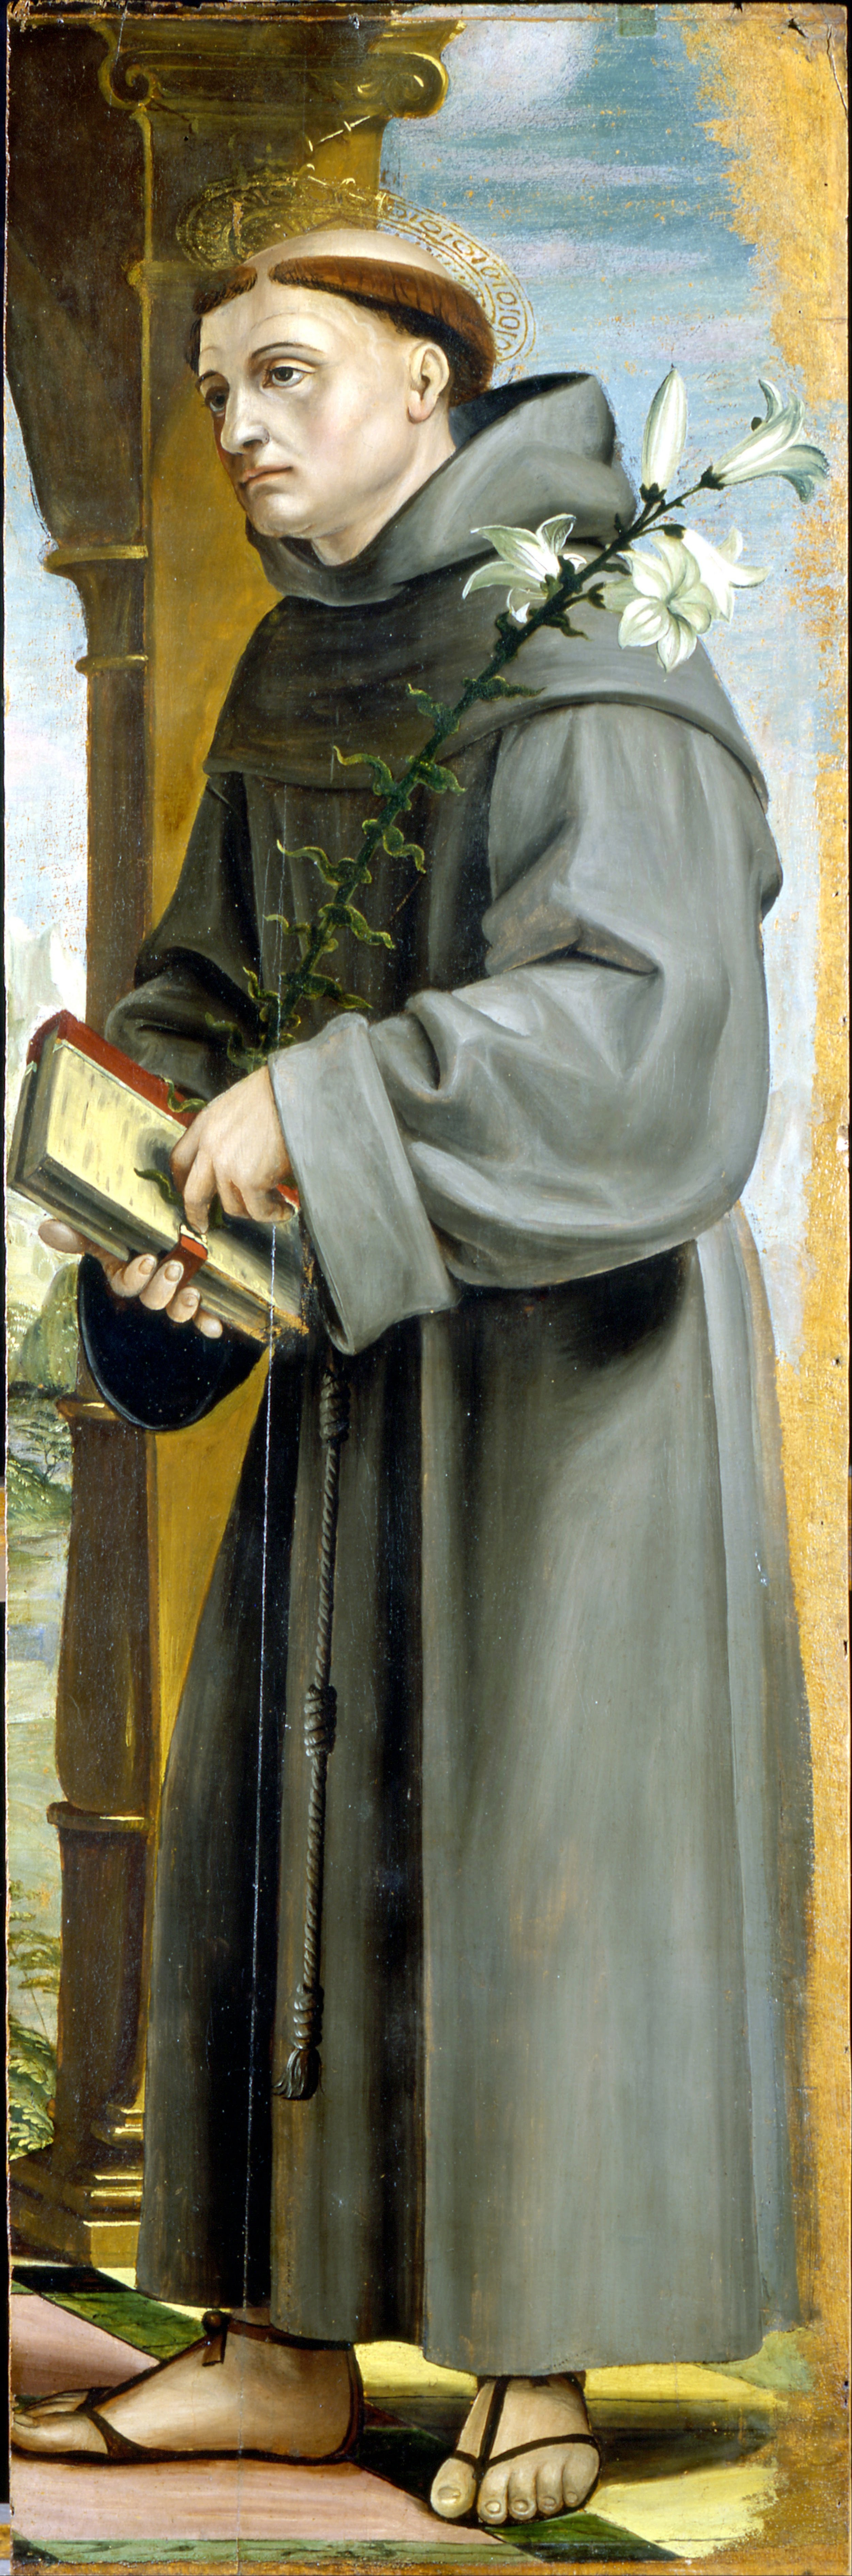 Saint Anthony is far more than the saint who finds lost objects.